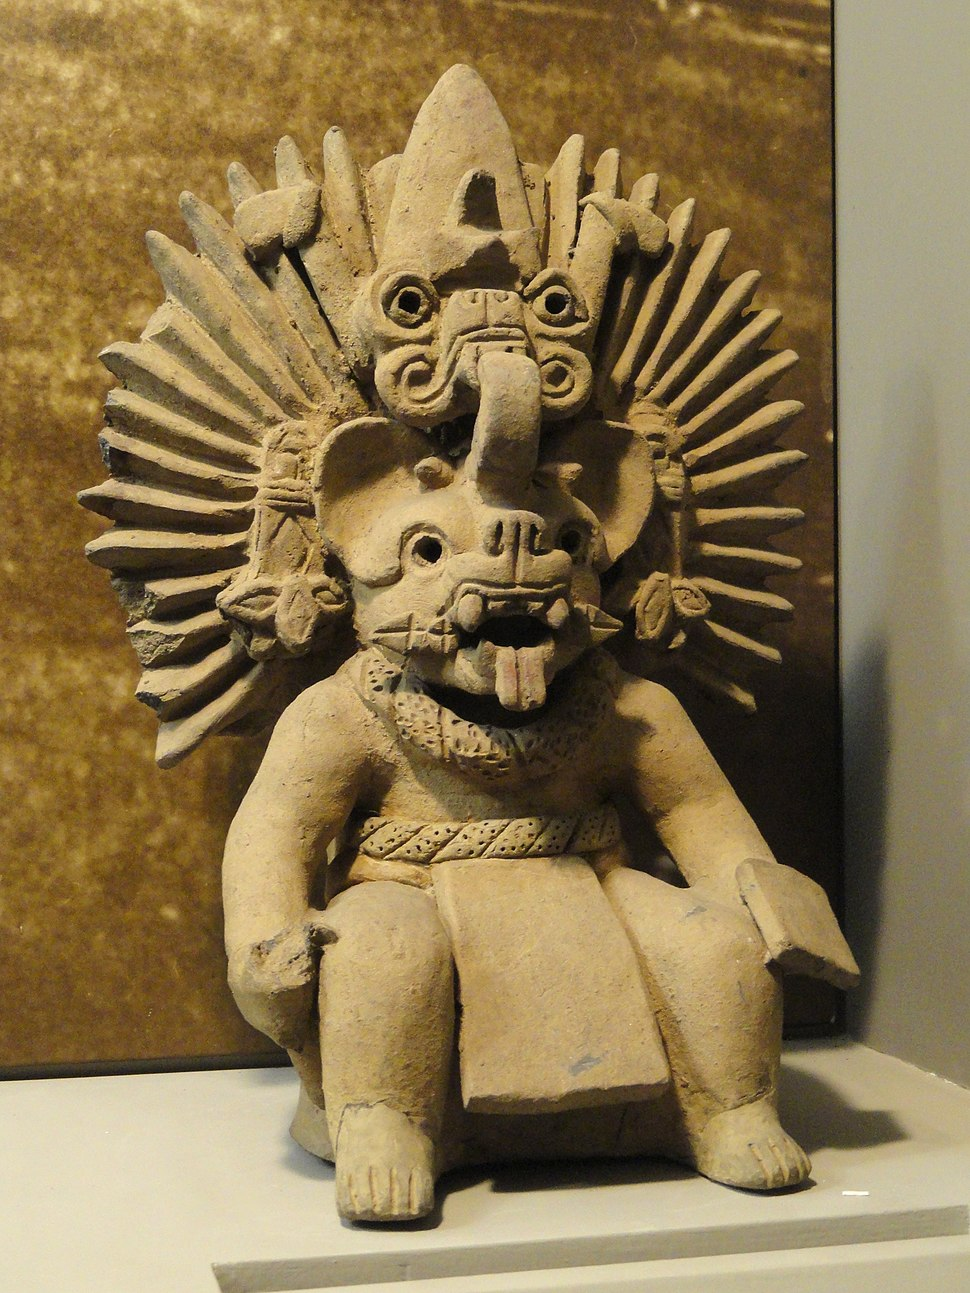 Bat god, Zapotec, Period III-A - Mesoamerican objects in the American Museum of Natural History - DSC06023